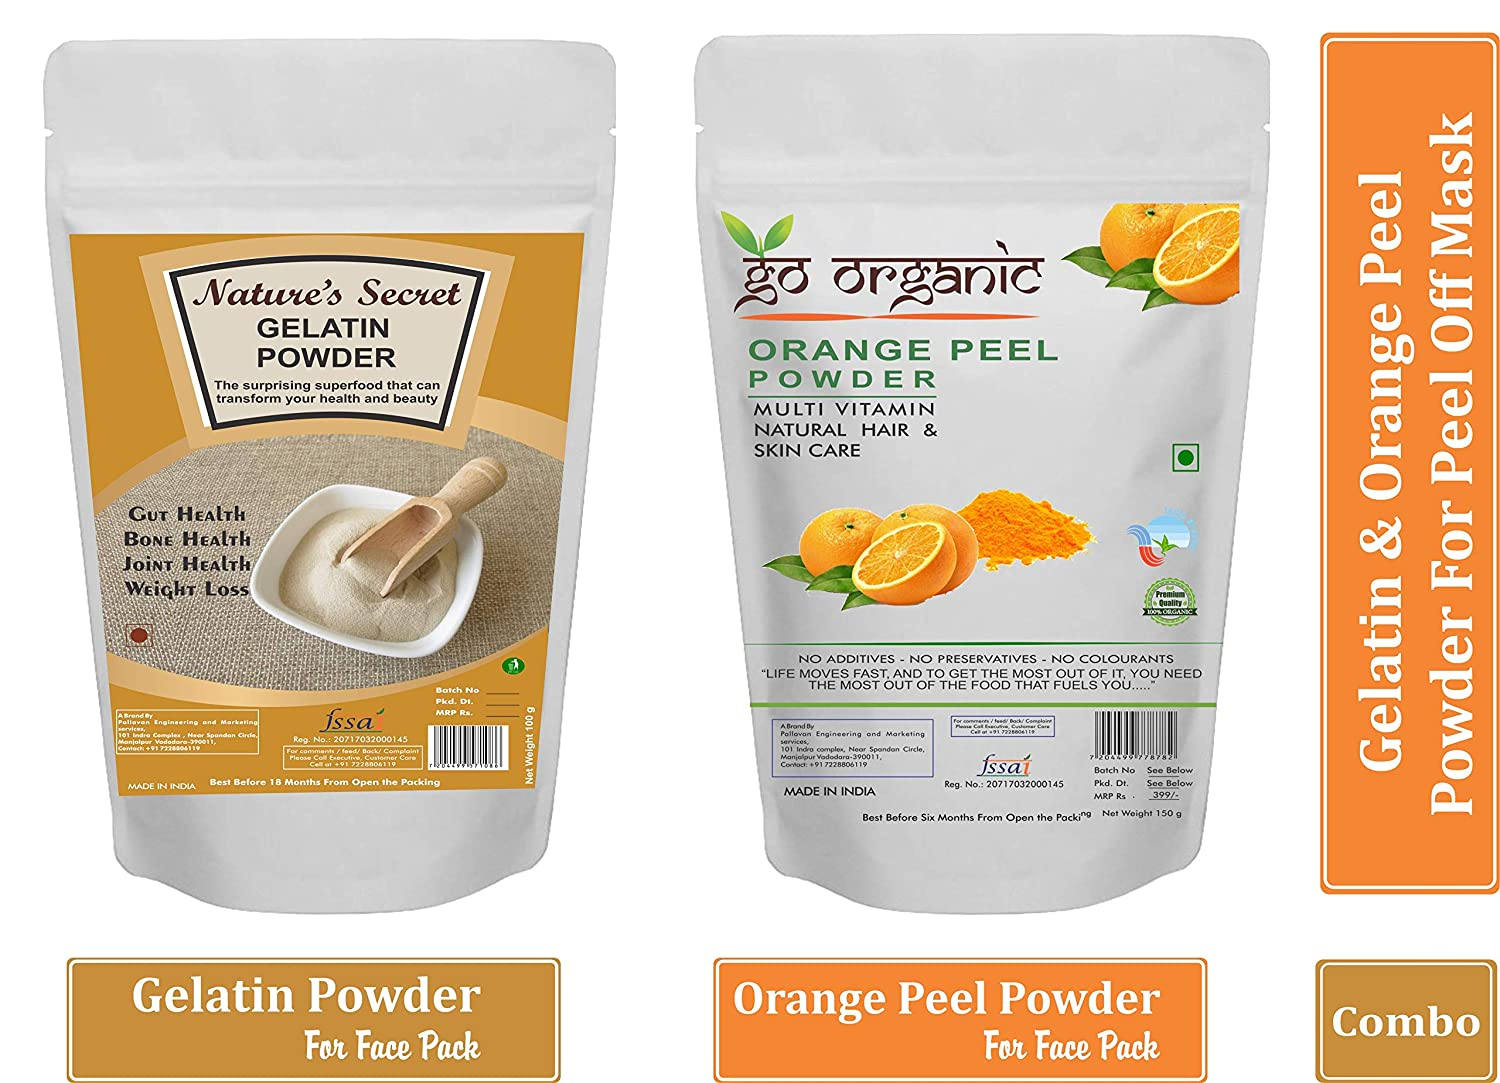 Buy Go Organic & Nature's Secret Gelatin Powder for DIY Peel off mask (100g) Online at Low Prices in India - Amazon.in